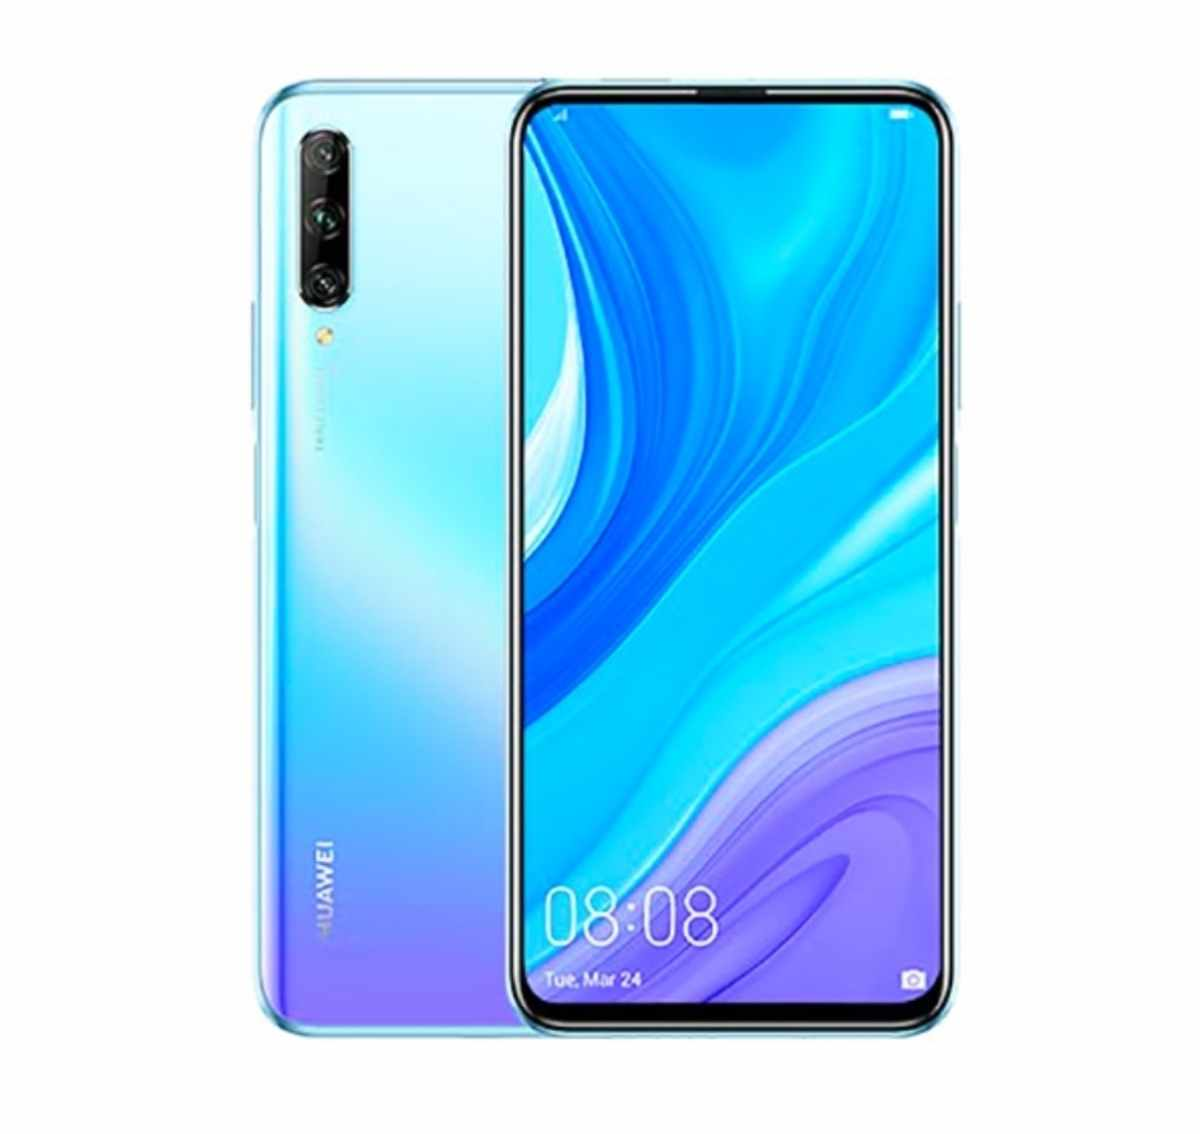 Huawei Y9s, Huawei Y9s price in Nigeria, price of Huawei Y9s in Nigeria, How much is Huawei Y9s in Nigeria, Huawei Y9s specs and price, Specs and price of Huawei Y9s in Nigeria, Huawei Y9s price, Huawei Y9s specs, where to buy Huawei Y9s in Nigeria, Huawei Y9s specification